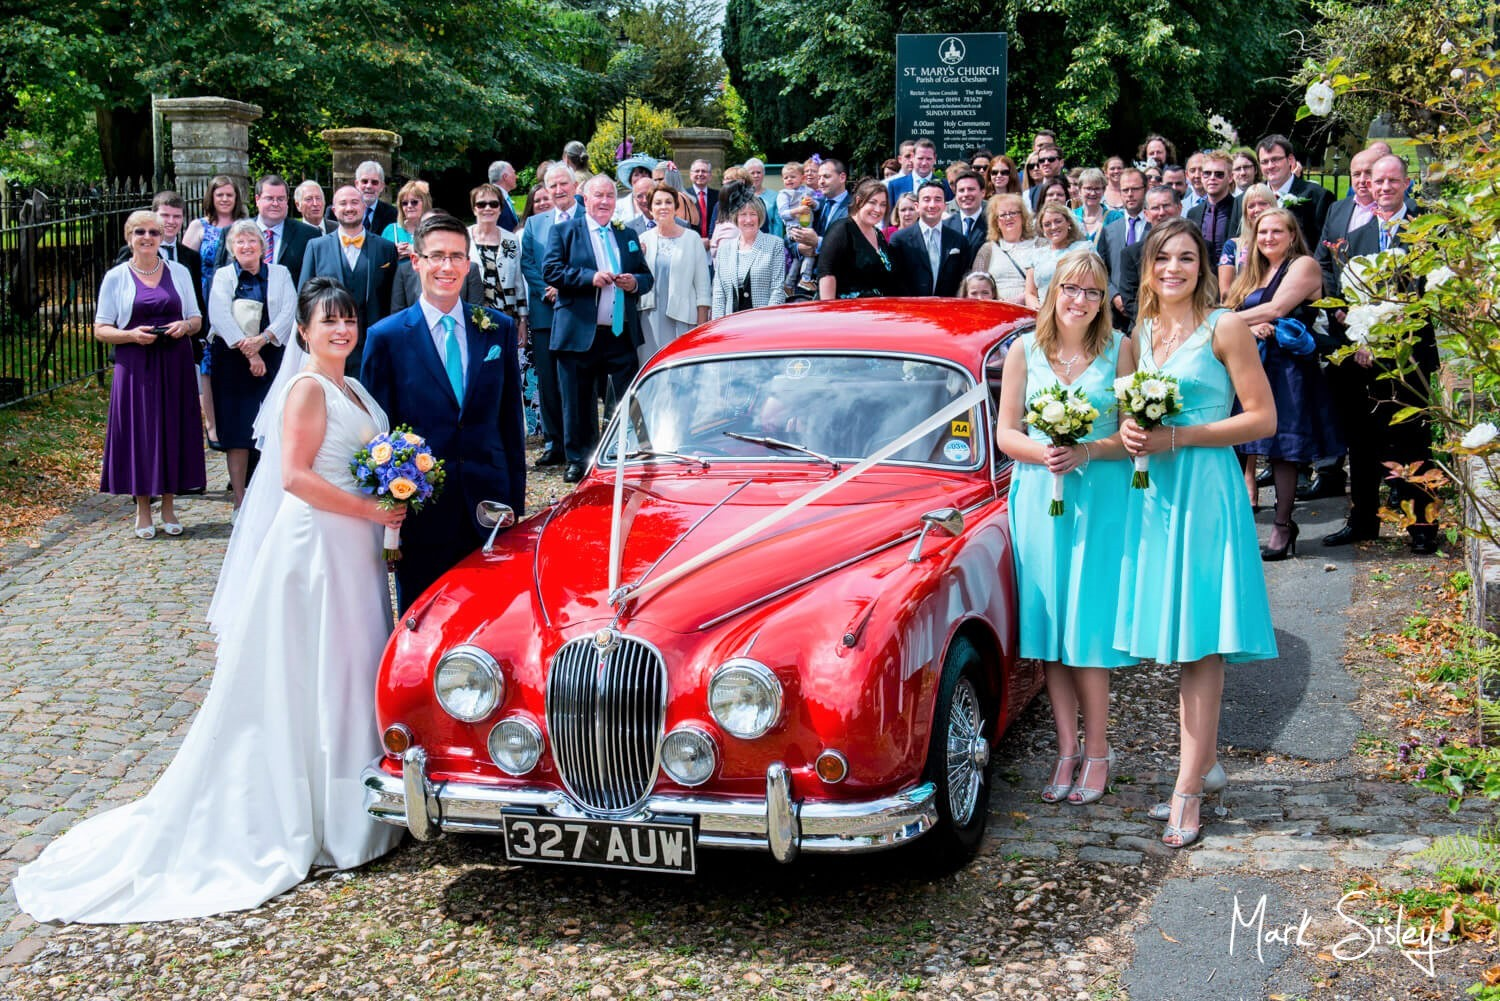 Bride and groom and wedding guests with red Jaguar at Chesham wedding